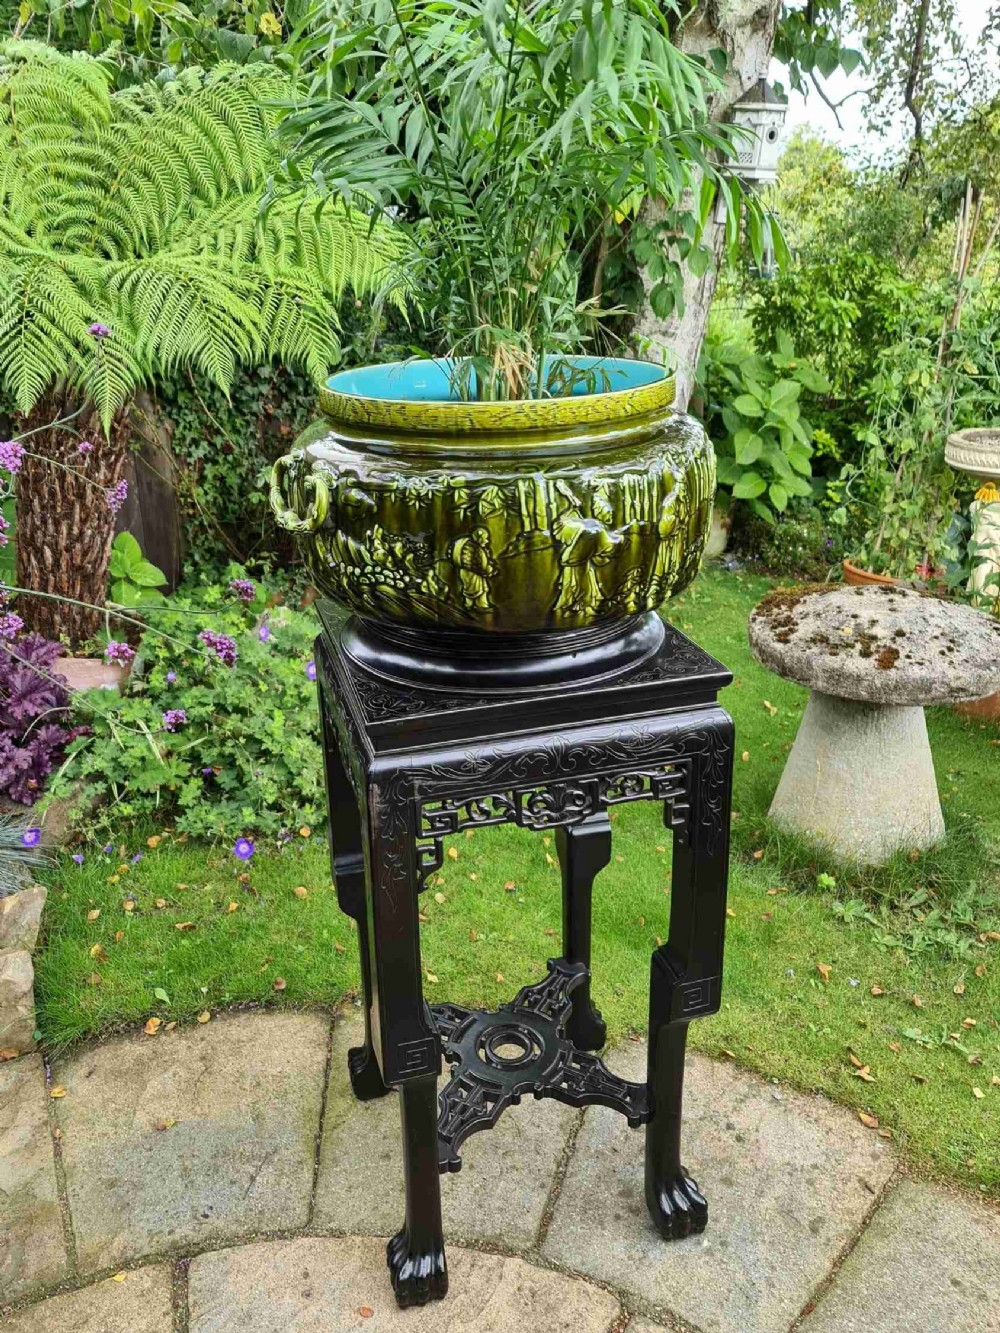 french sarreguemines majolica jardiniere with it's own chinese chippendale hardwood stand